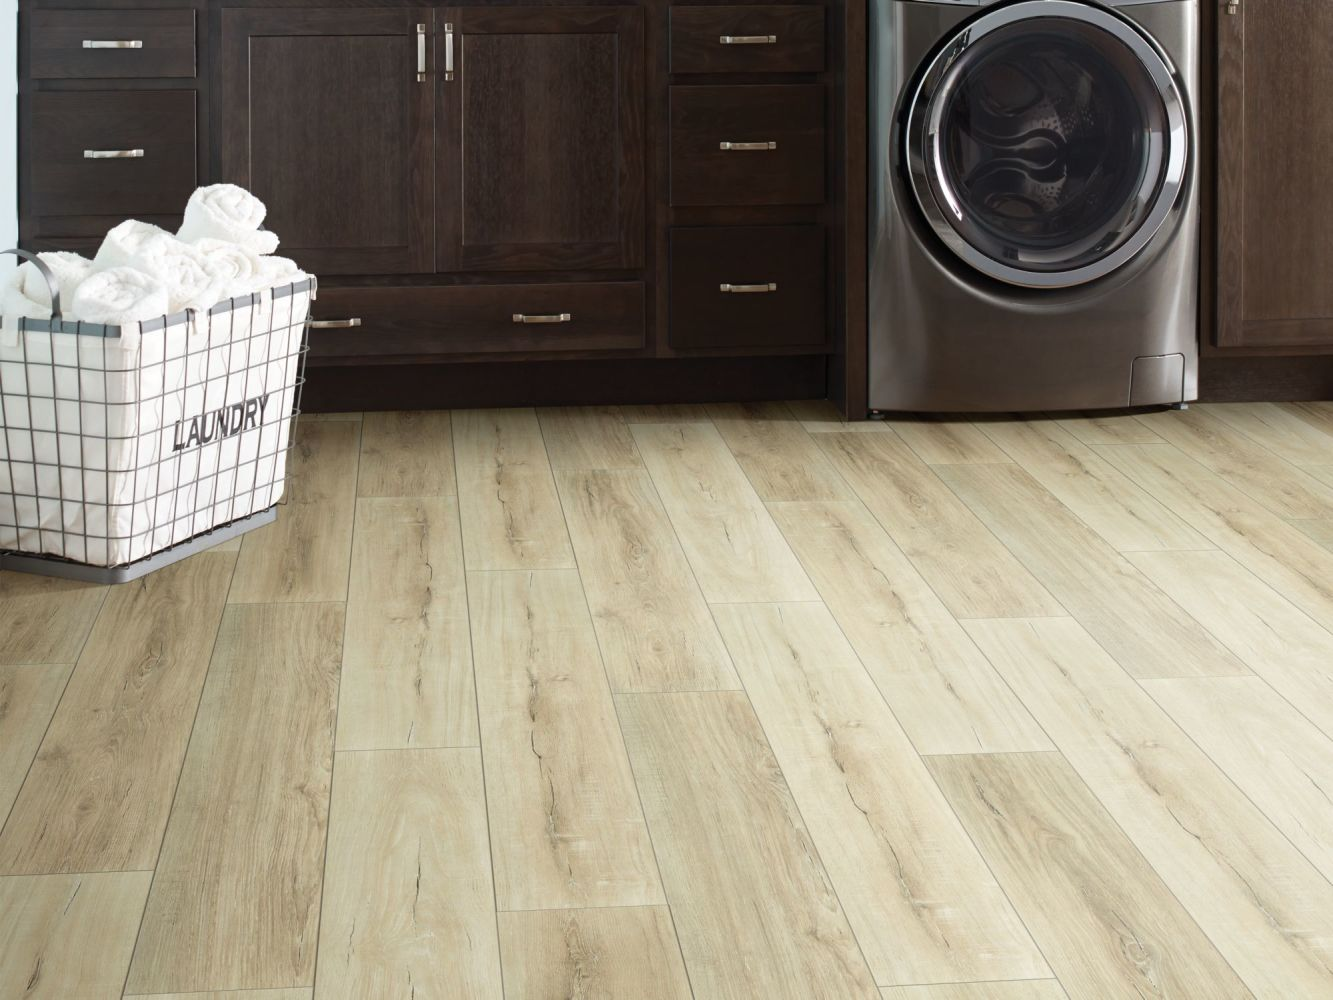 Shaw Floors Resilient Residential Tenacious Hd+ Accent Driftwood 01053_3011V